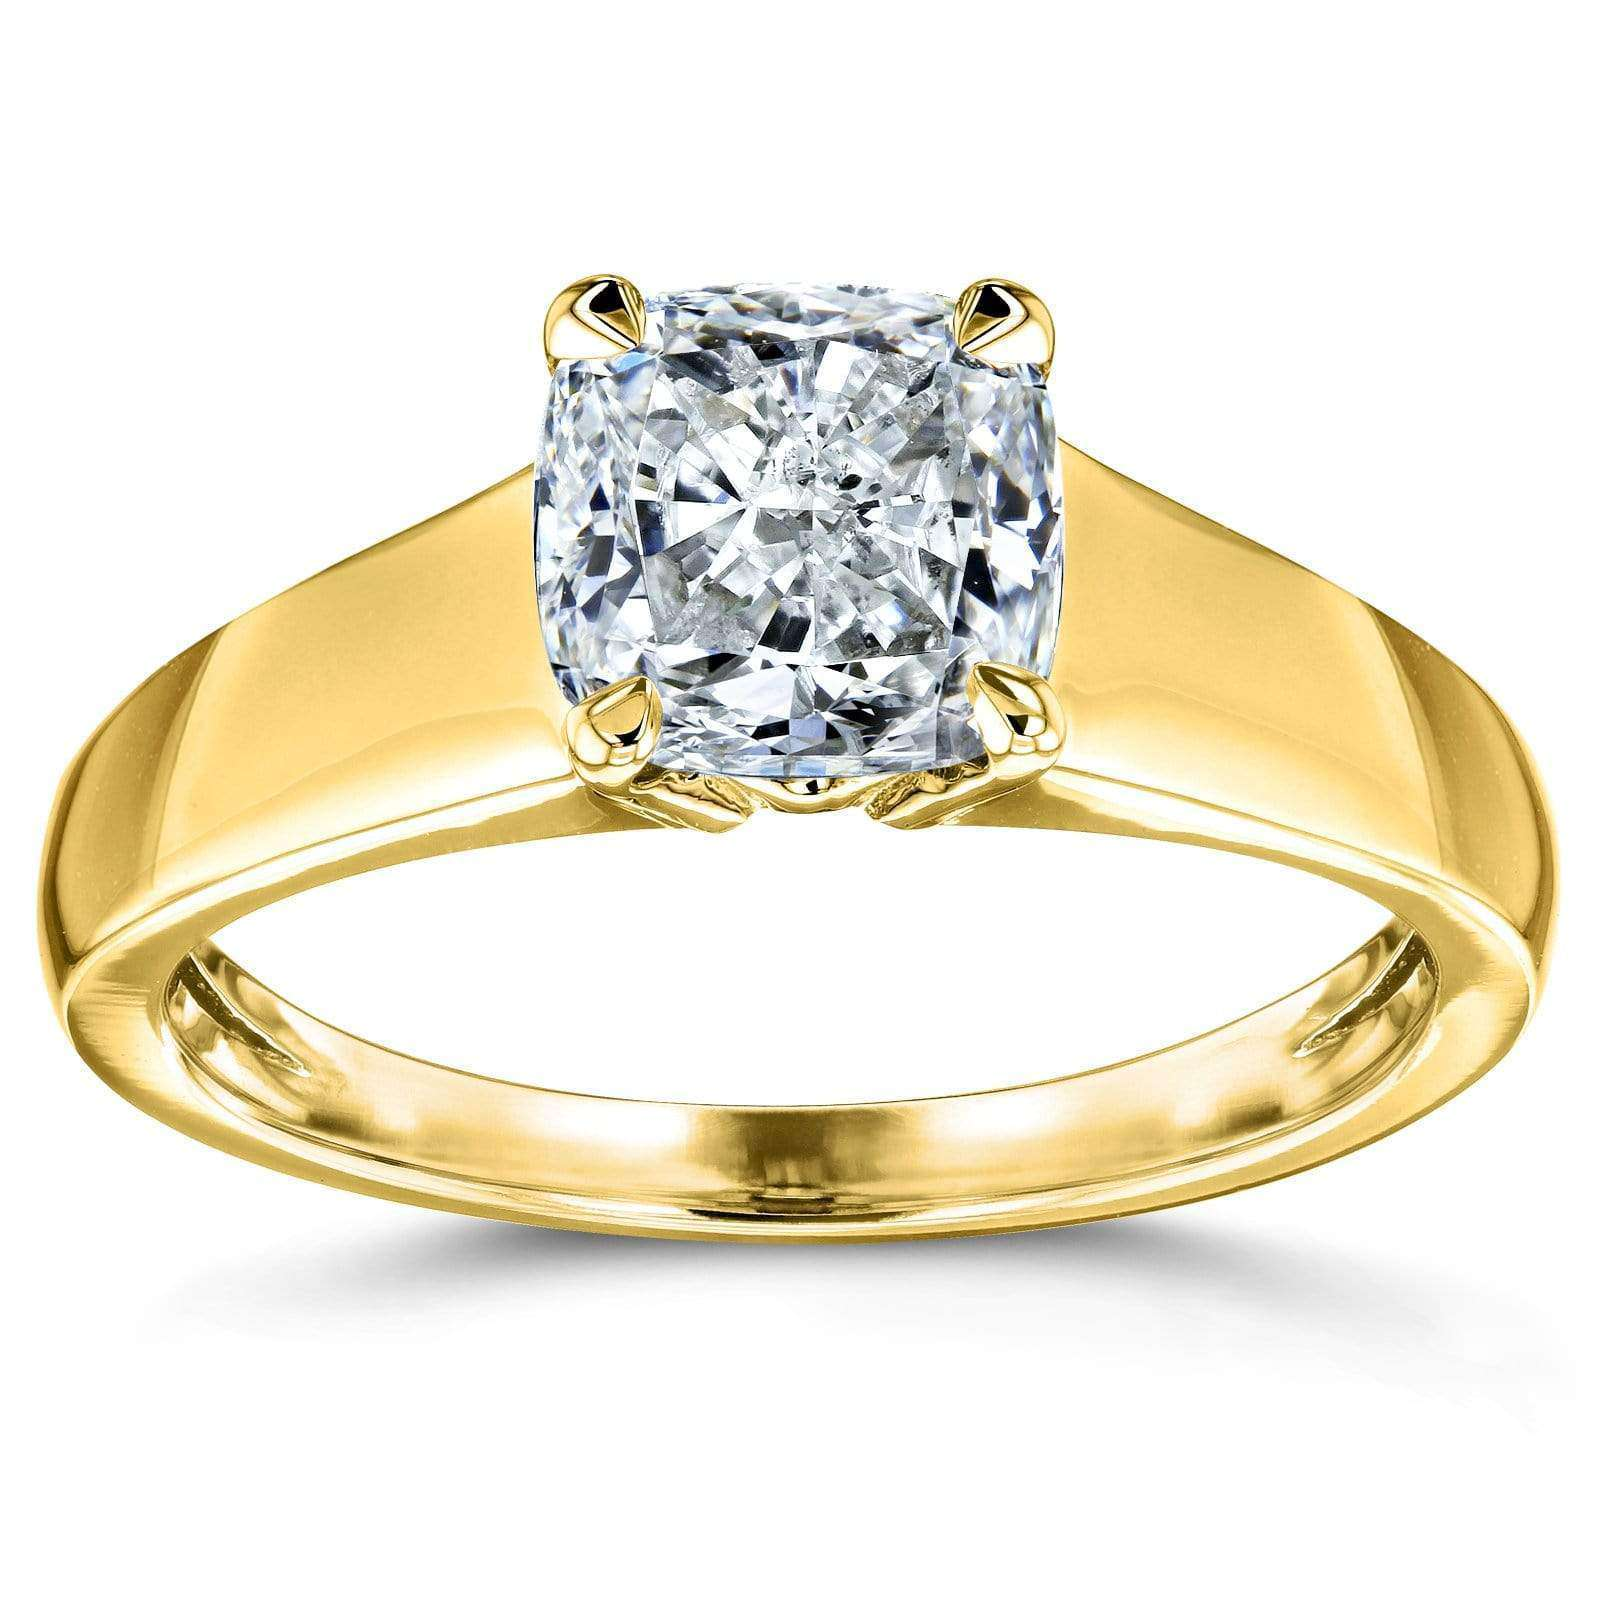 Coupons 1ct Cushion Diamond Wide Solitaire - 4.5